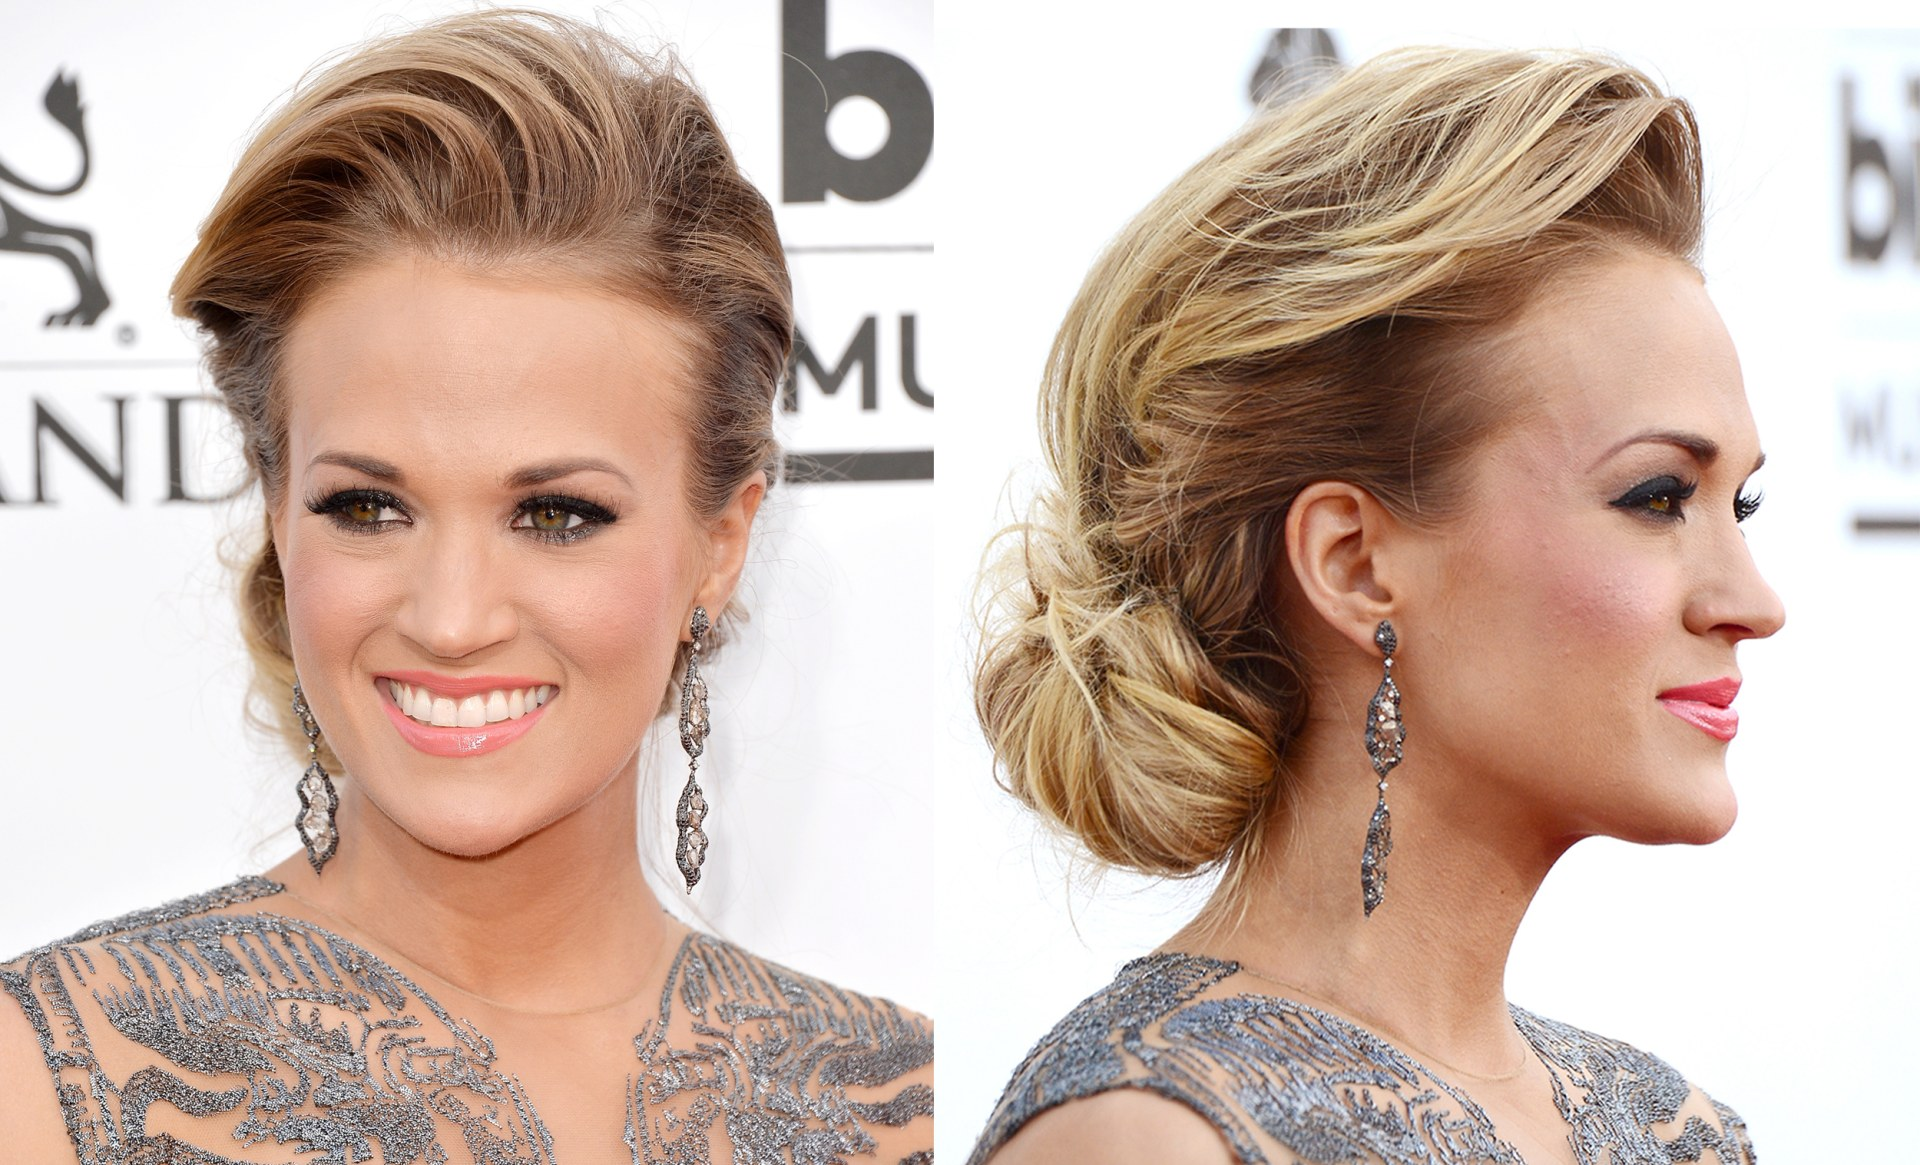 Carrie Underwood Hair Style: Carrie Underwood's Hair Evolution: From 'American Idol' To